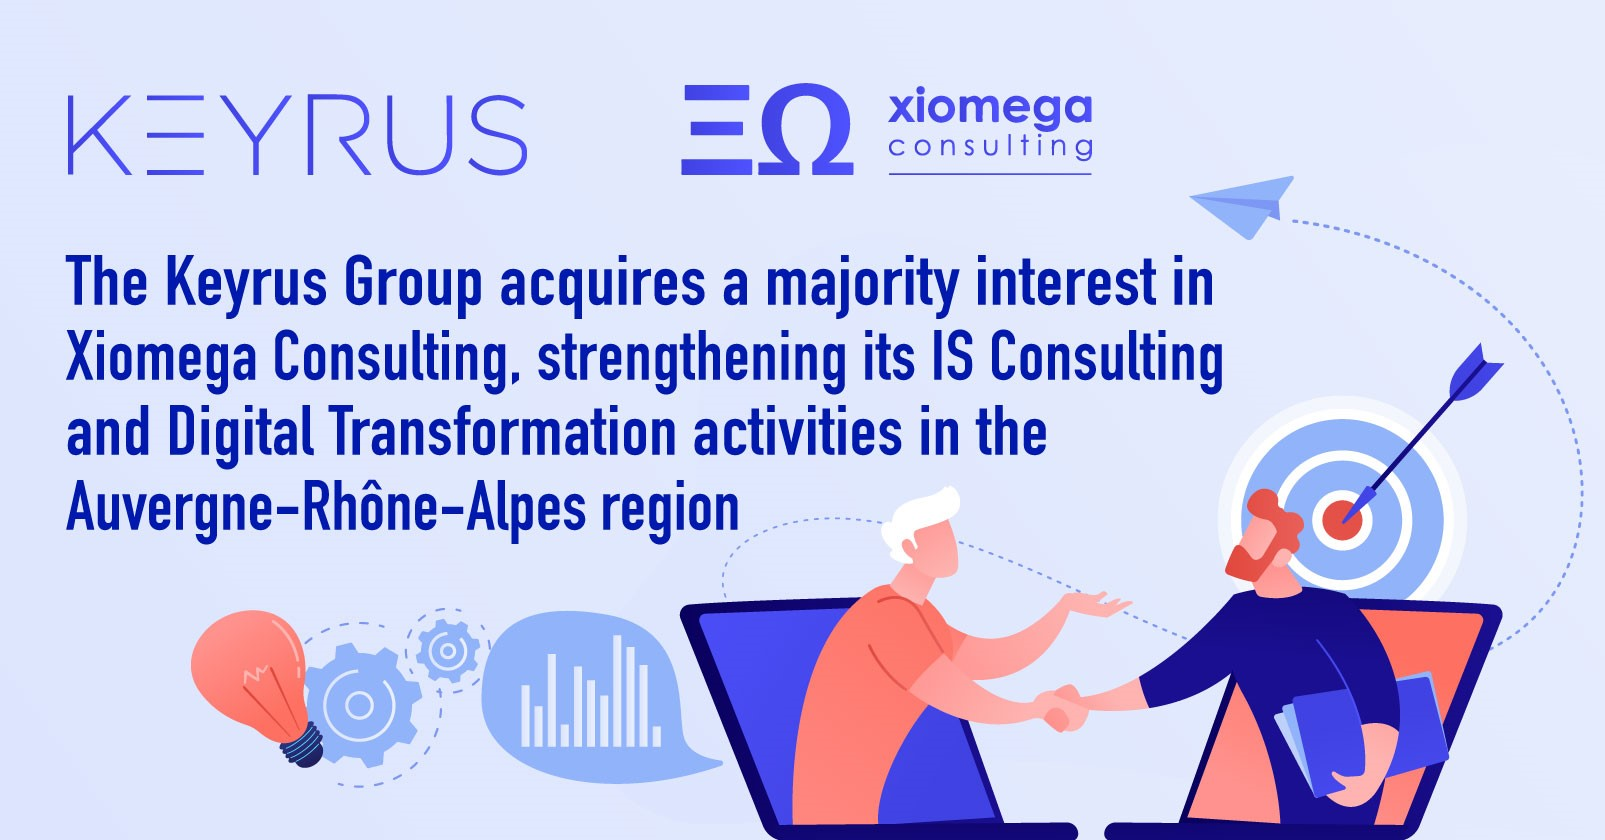 The Keyrus Group acquires a majority interest in Xiomega Consulting